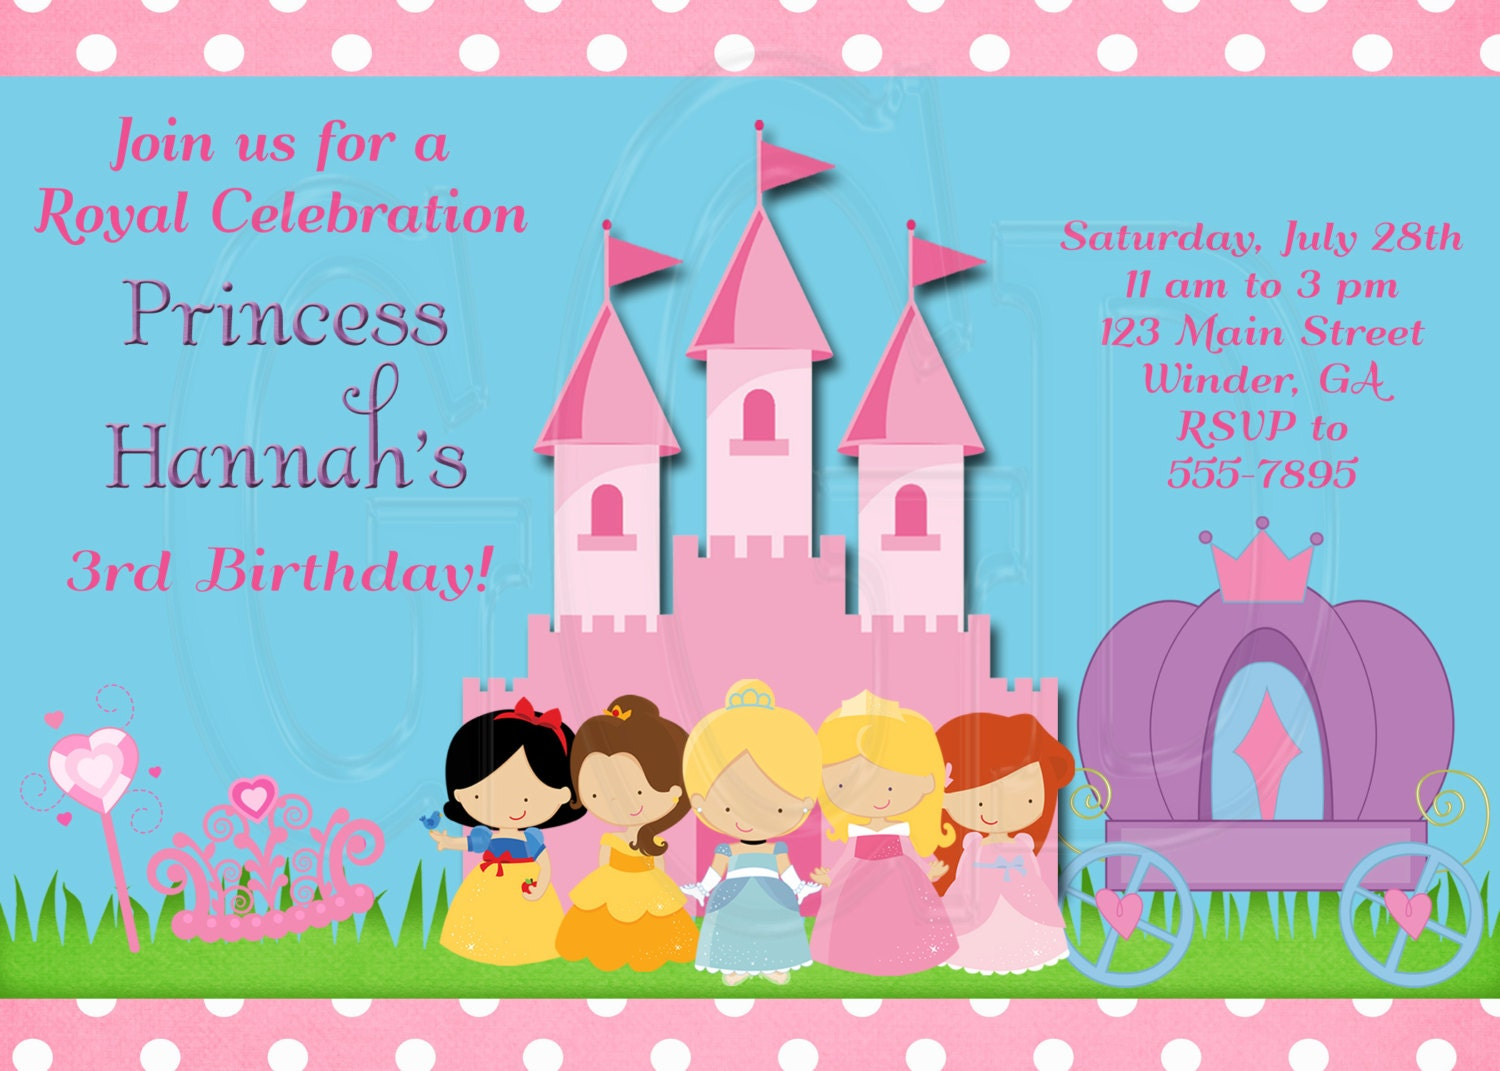 princess birthday invitation disney inspired digital file princess birthday invitation disney inspired digital file 128270zoom